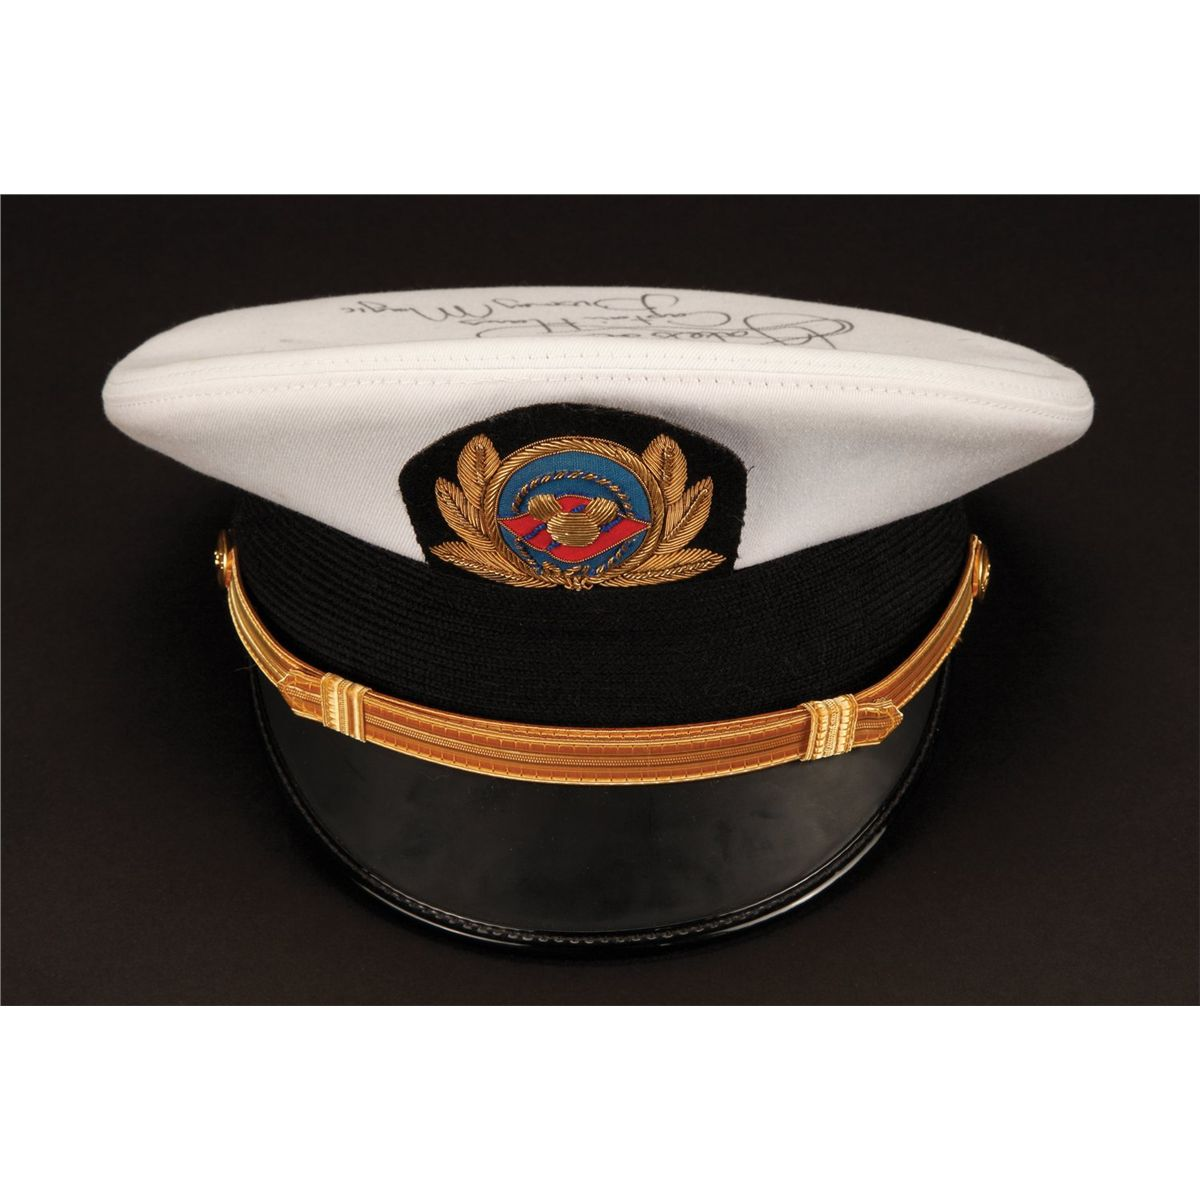 Signed Captains Hat From The Captain Of The Disney Cruise Ship - Cruise ship costume